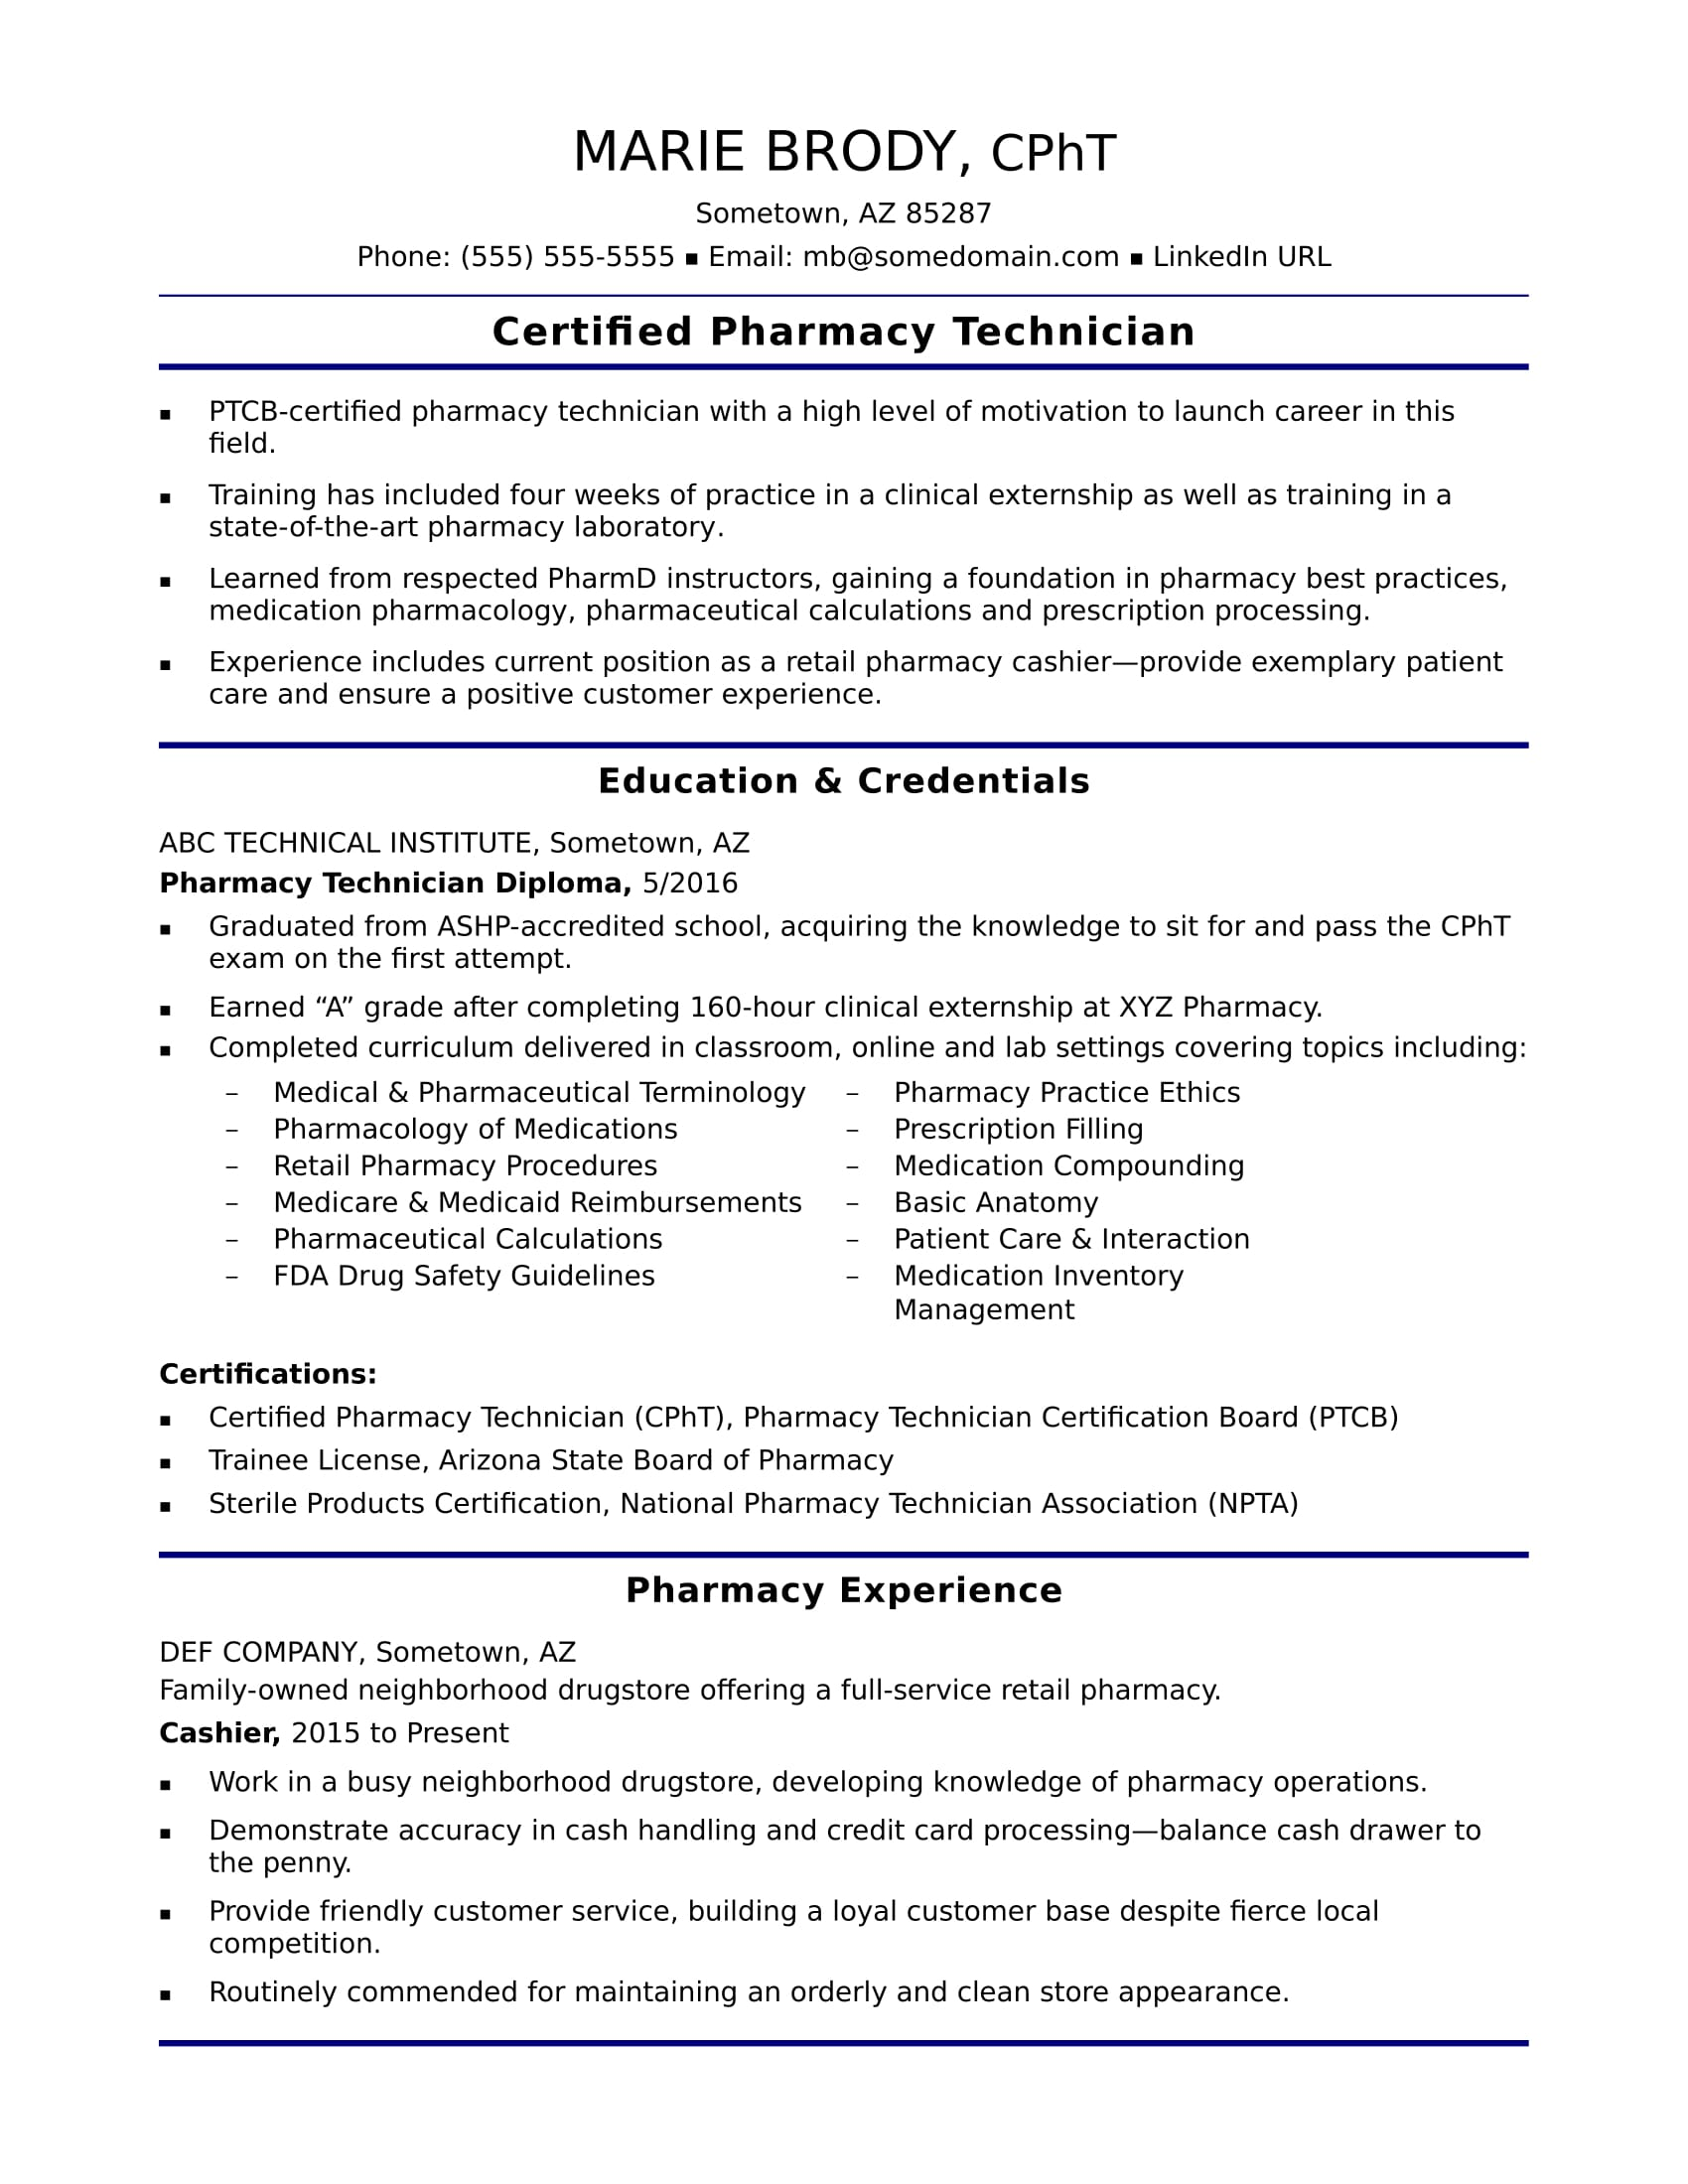 sample resume for an entry level pharmacy technician - Pharmacy Assistant Resume Sample